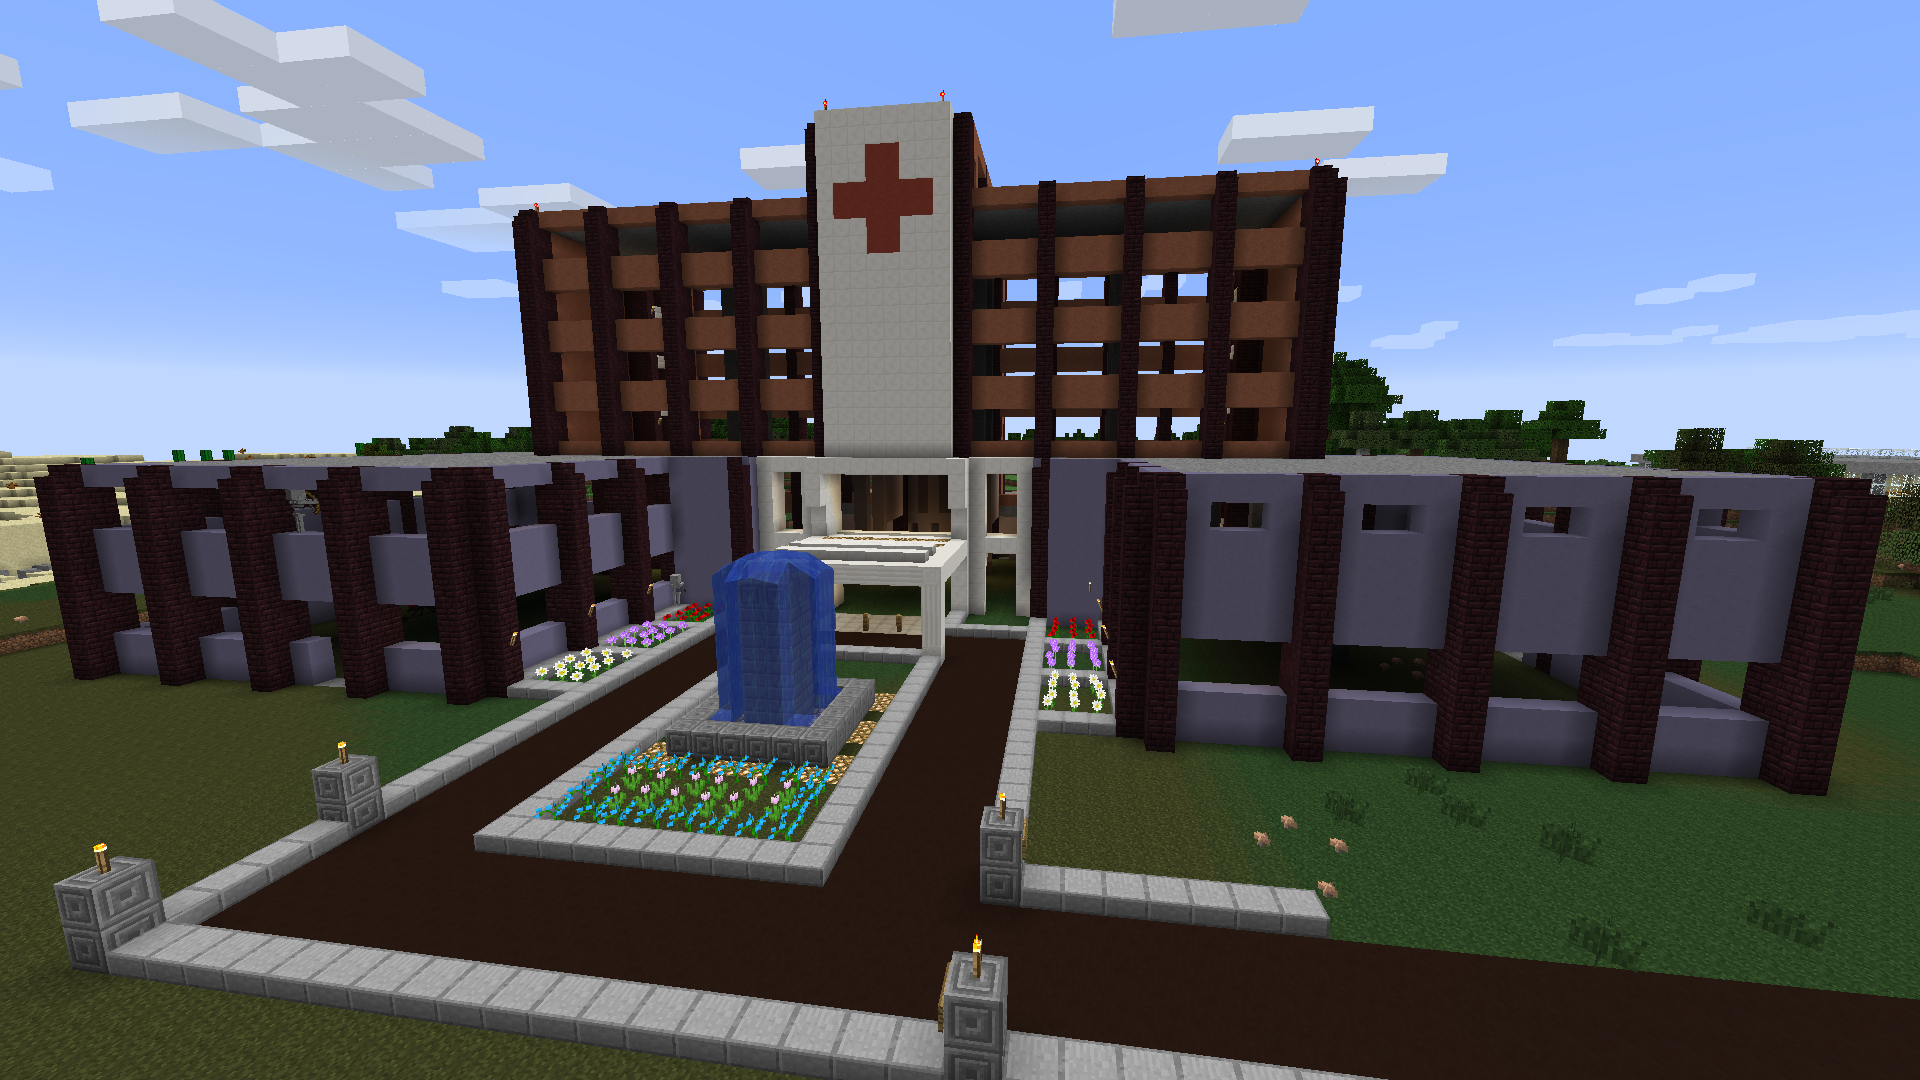 REoL TOUGH City Server: REoLVille Hospital - Other Videos